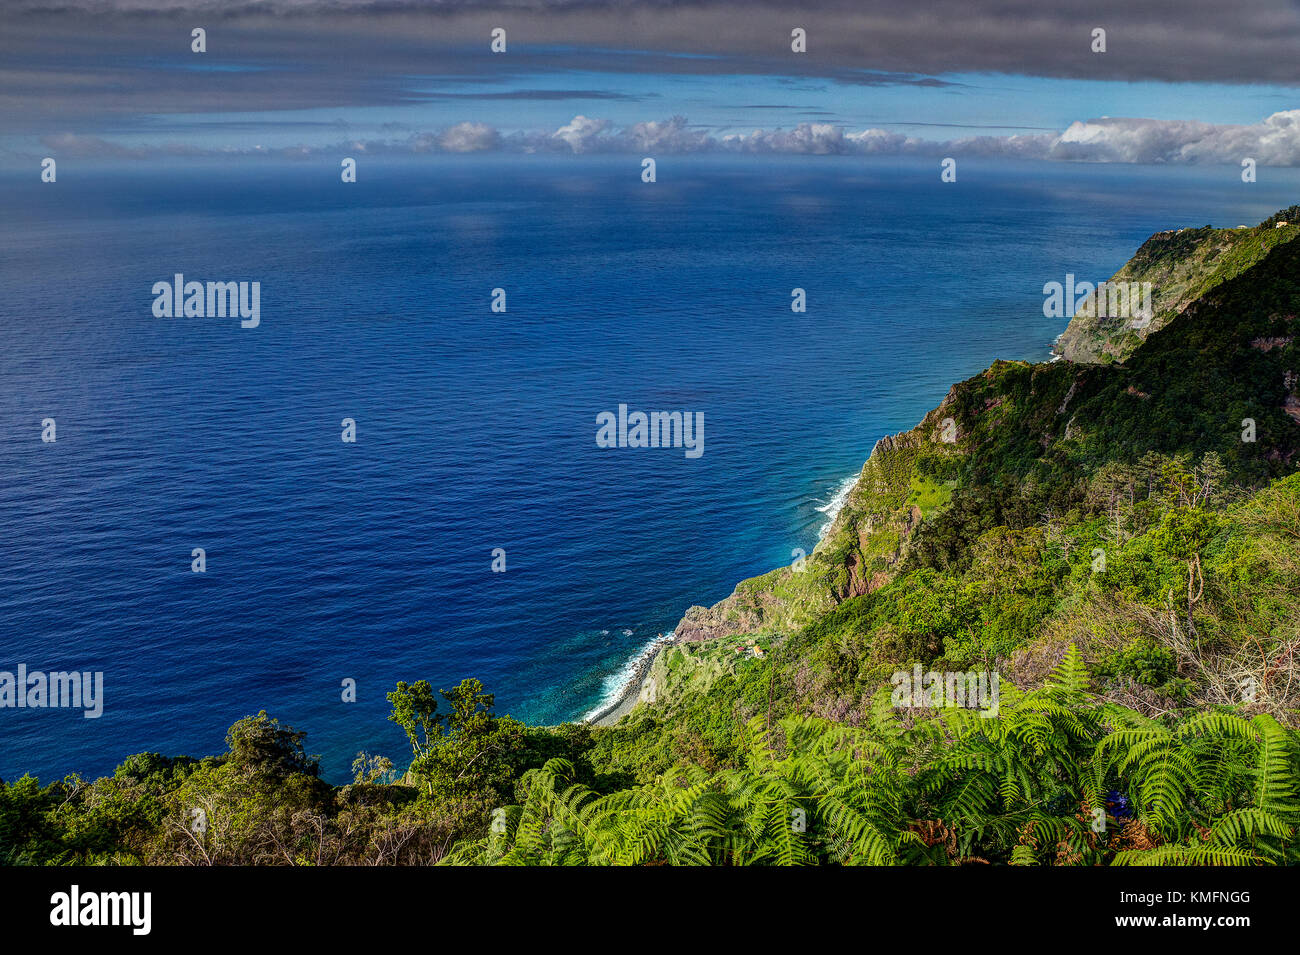 Viewpoint / Oceanview on Madeira island, portugal - Stock Image